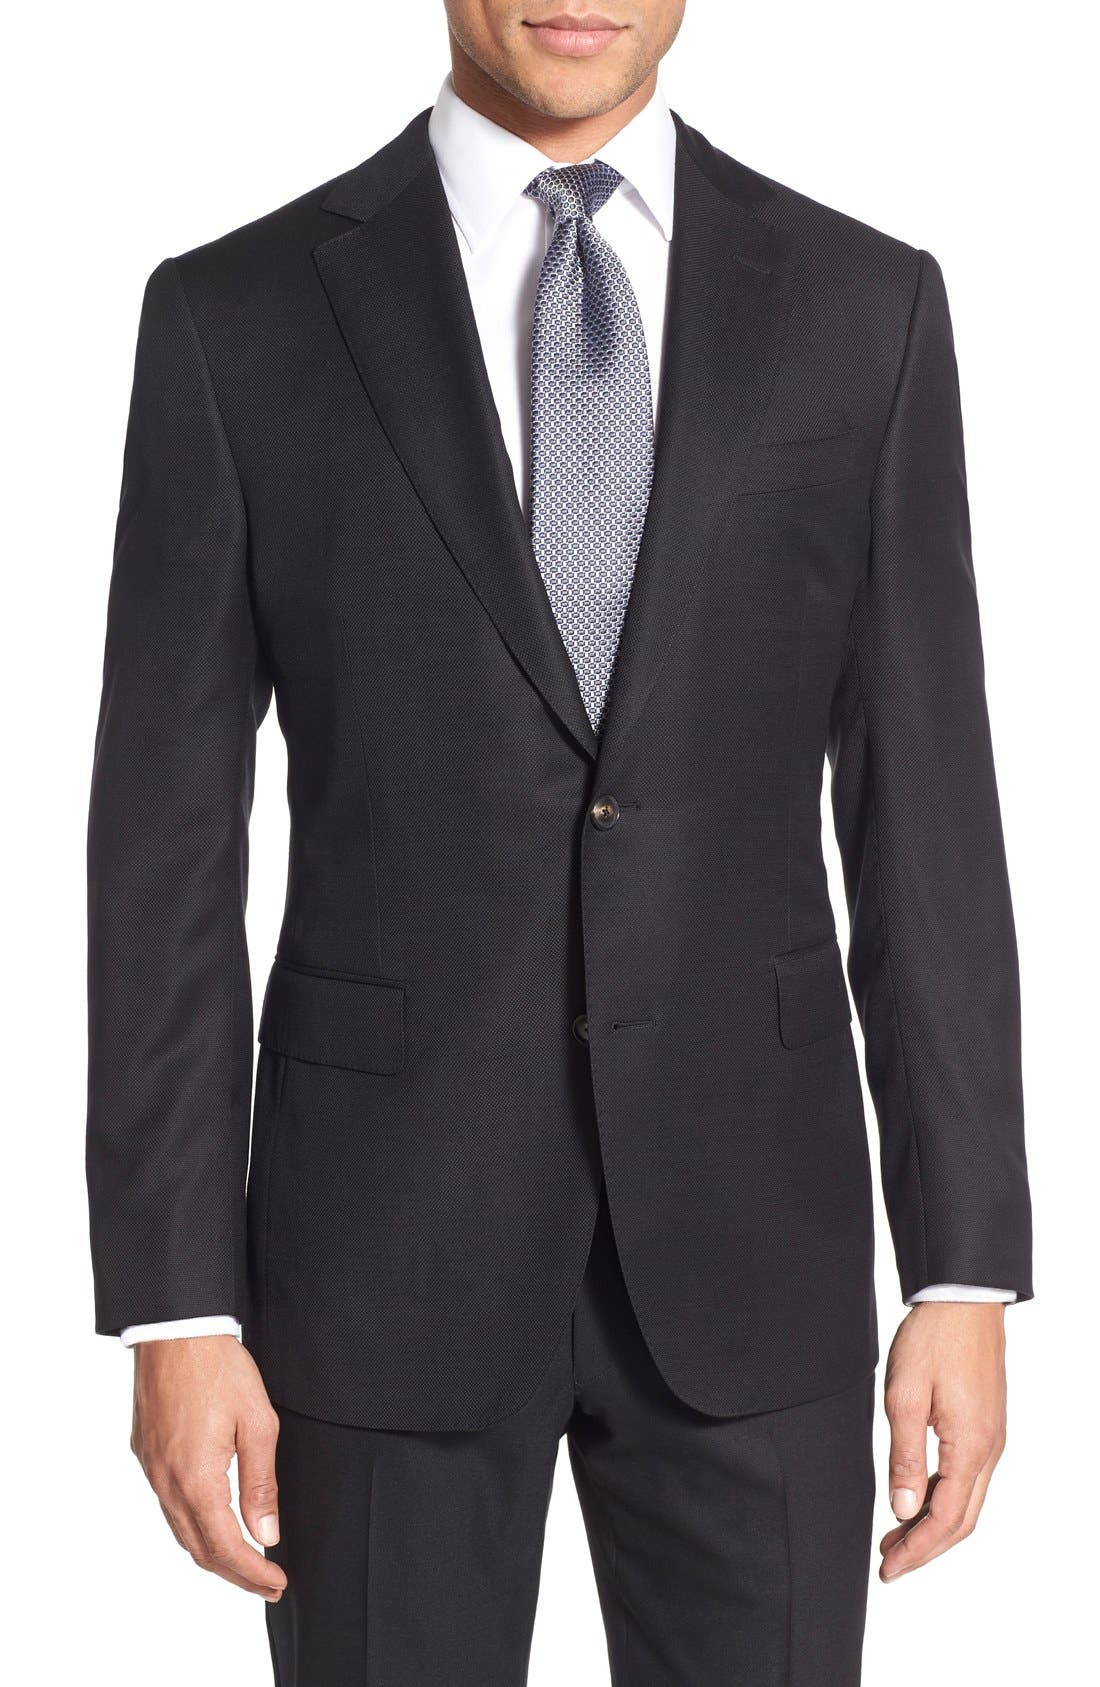 Classic Fit Wool Blazer,                         Main,                         color, Black